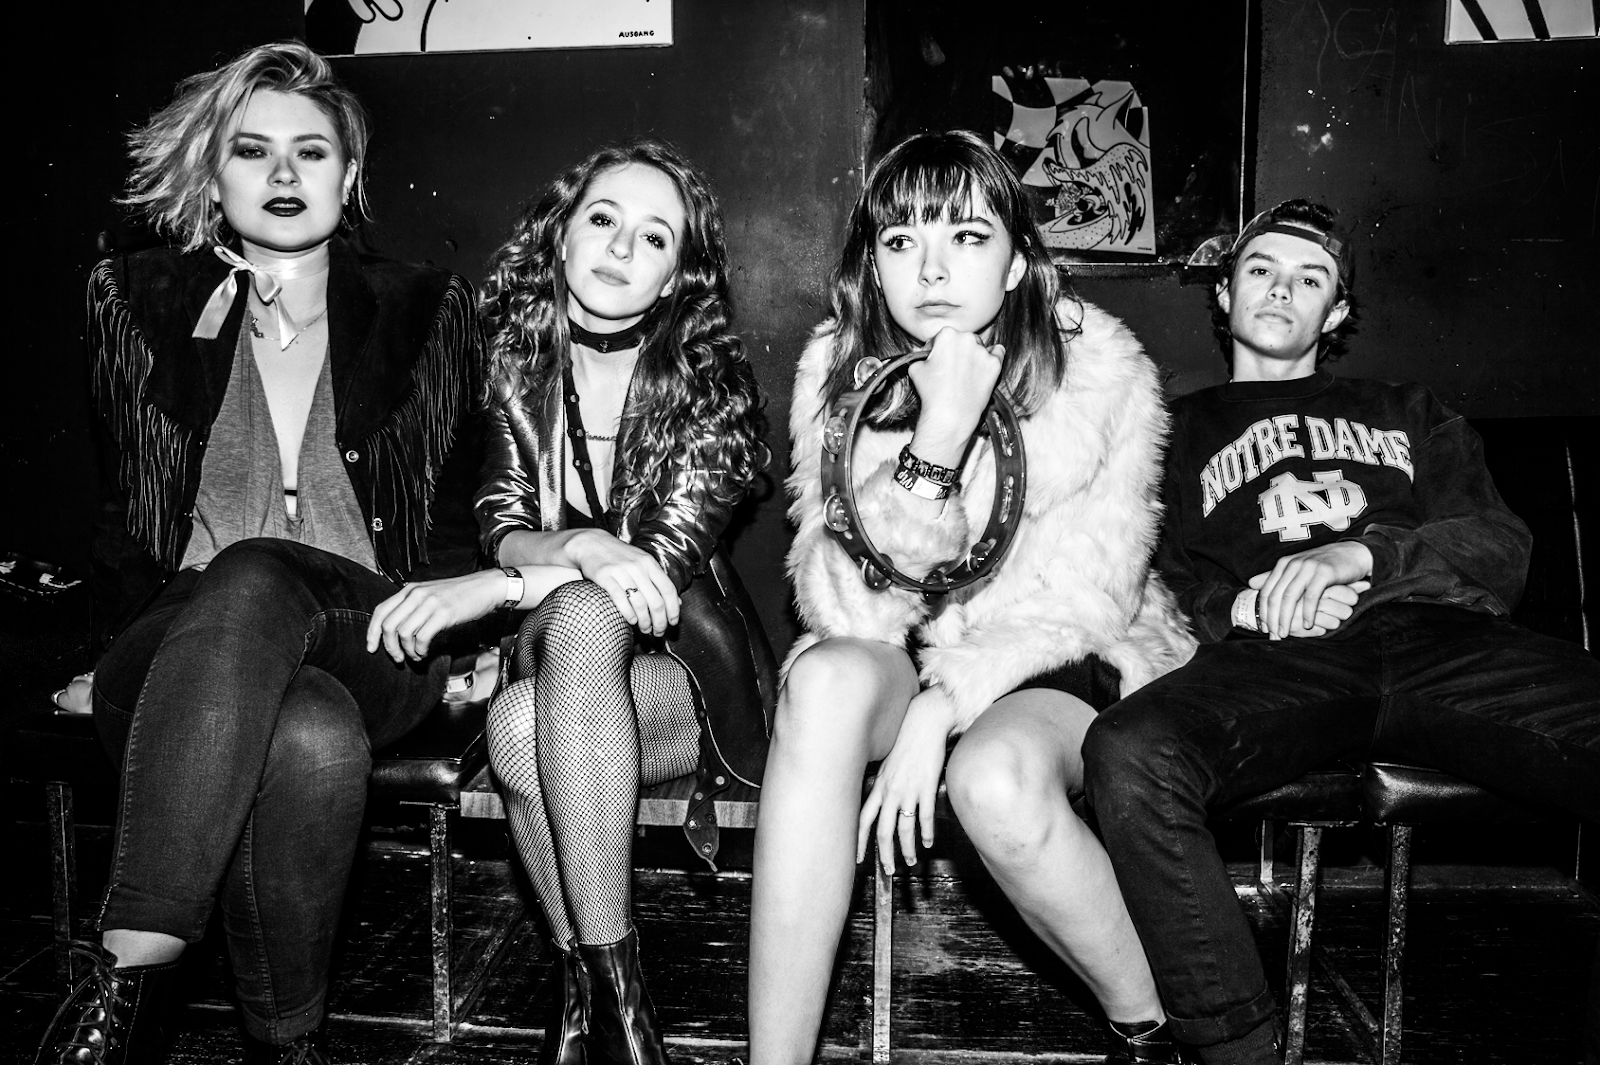 text message interview the regrettes by julia gibson dum this is julia gibson music staffer for dum dum zine thank you so much for doing this text message interview us we re stoked